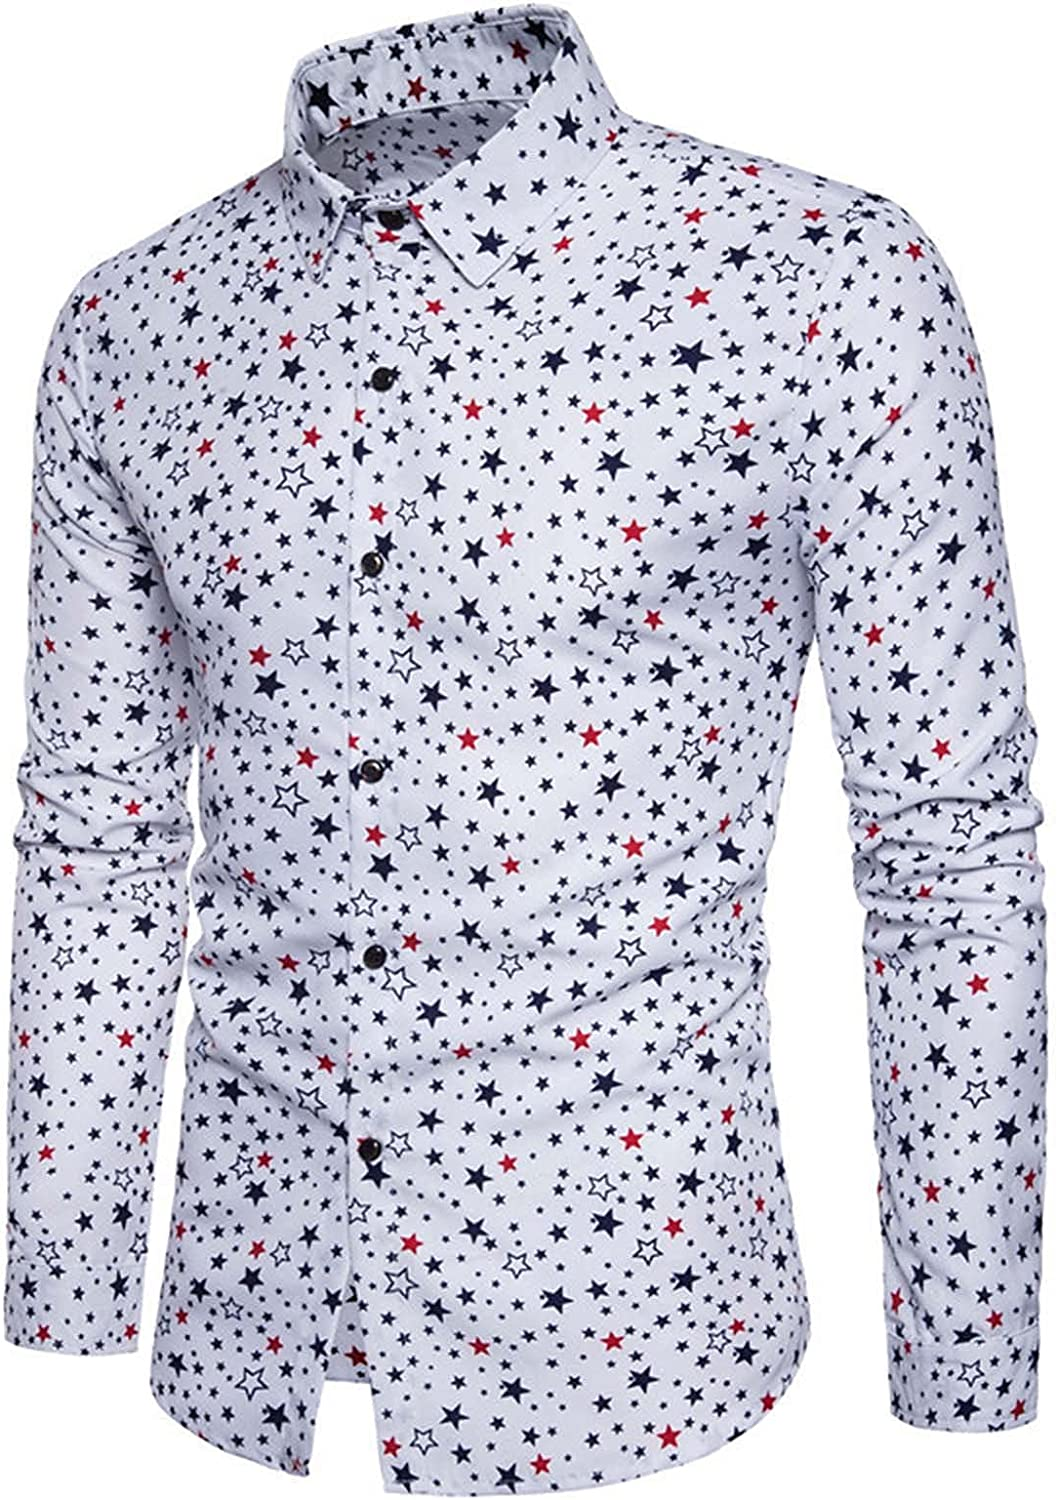 Fashion Long Sleeve Fitted Shirts for Men Retro Floral Printed Button Down Blouse Casual Dress Shirts for Holiday